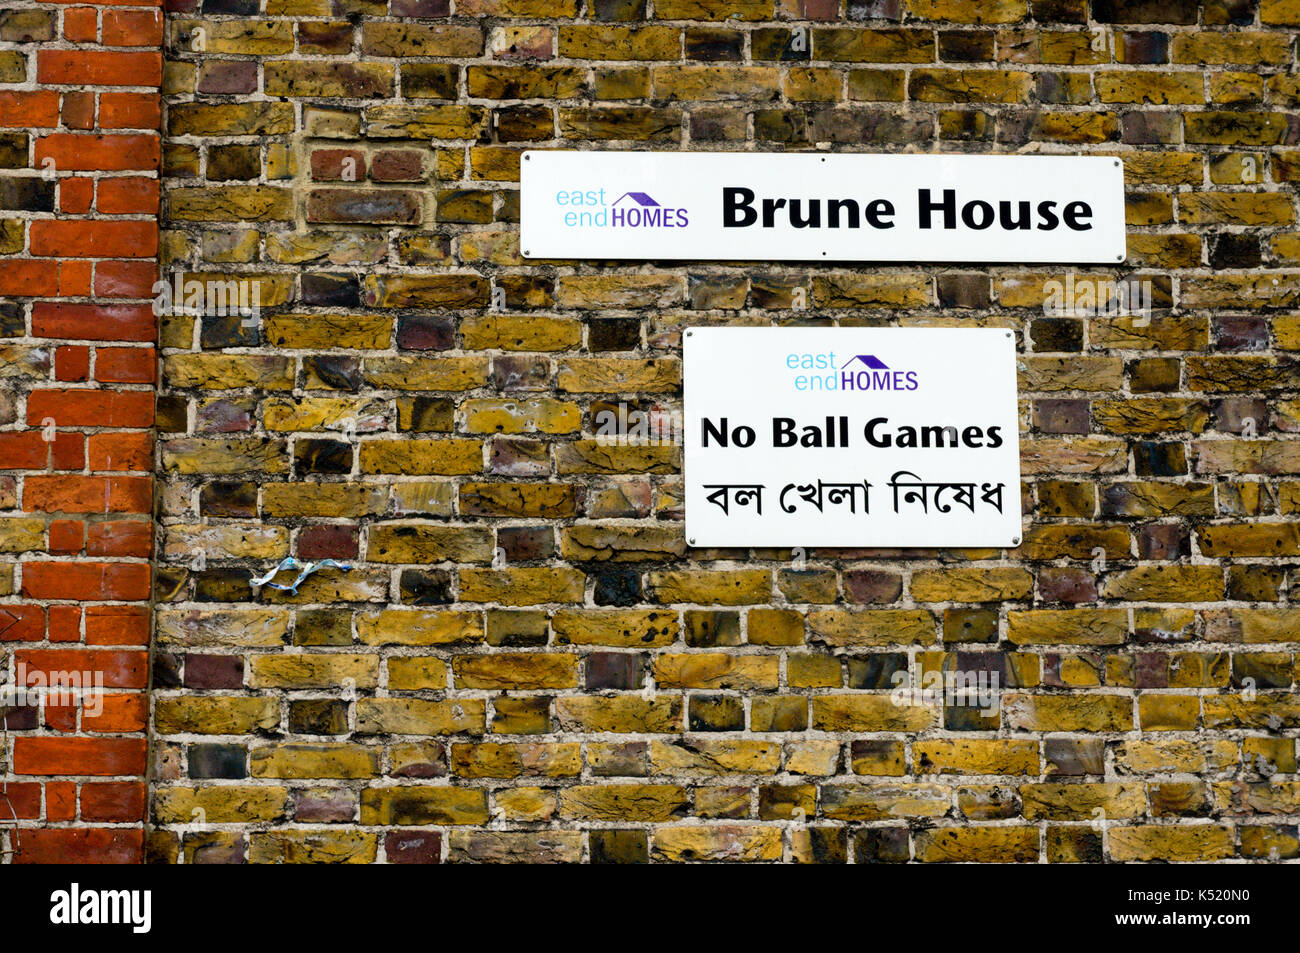 Bi-lingual sign in English and Bengali on side of housing association property in Whitechapel, East London. - Stock Image